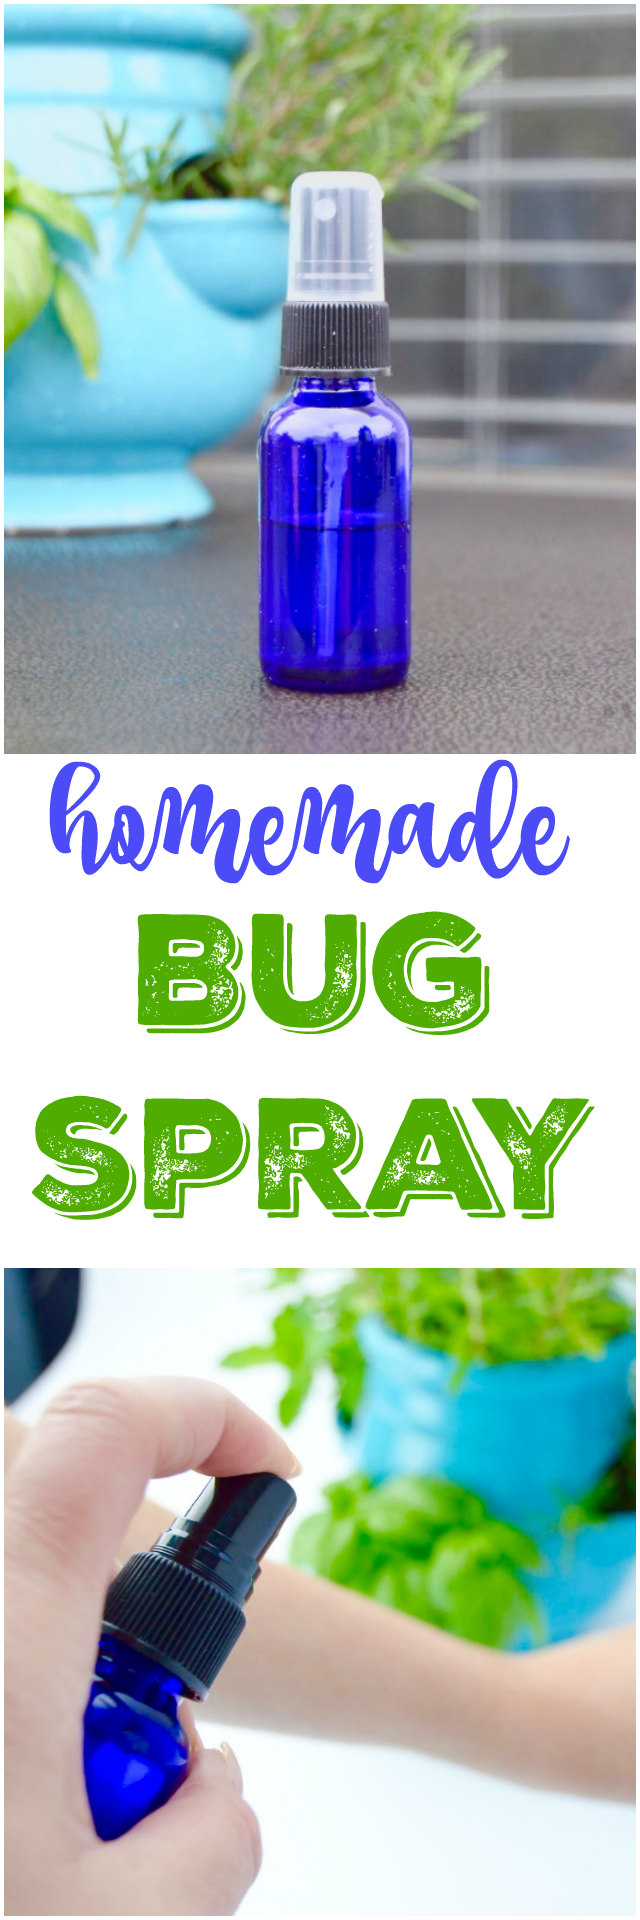 Homemade Bug Spray - Repels Mosquitoes and other biting bugs! No harmful chemicals - all natural.